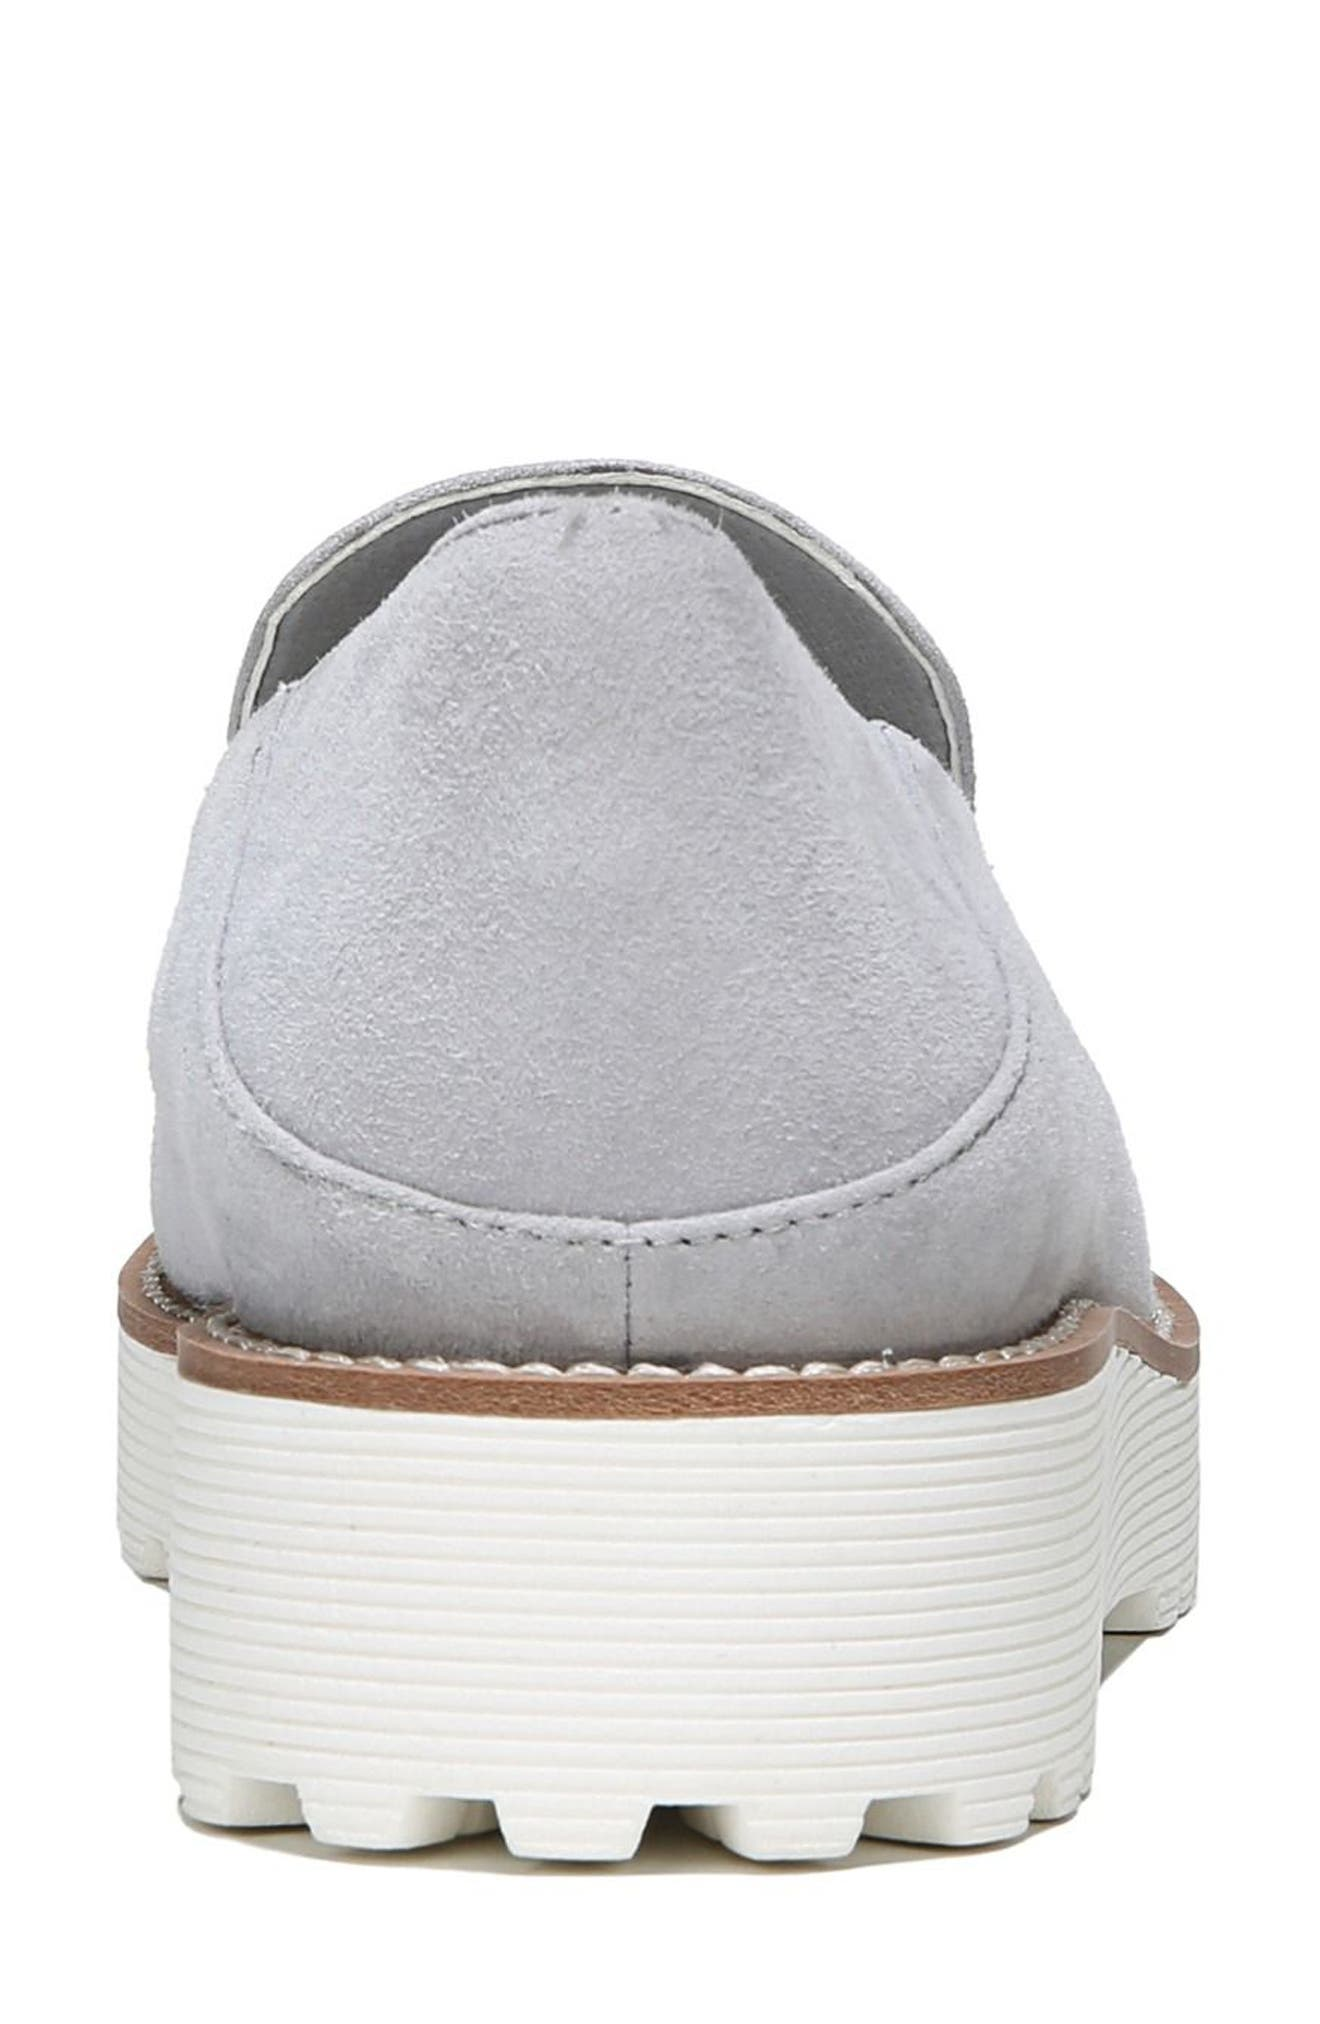 Jaxton Loafer,                             Alternate thumbnail 6, color,                             Artic Grey Suede